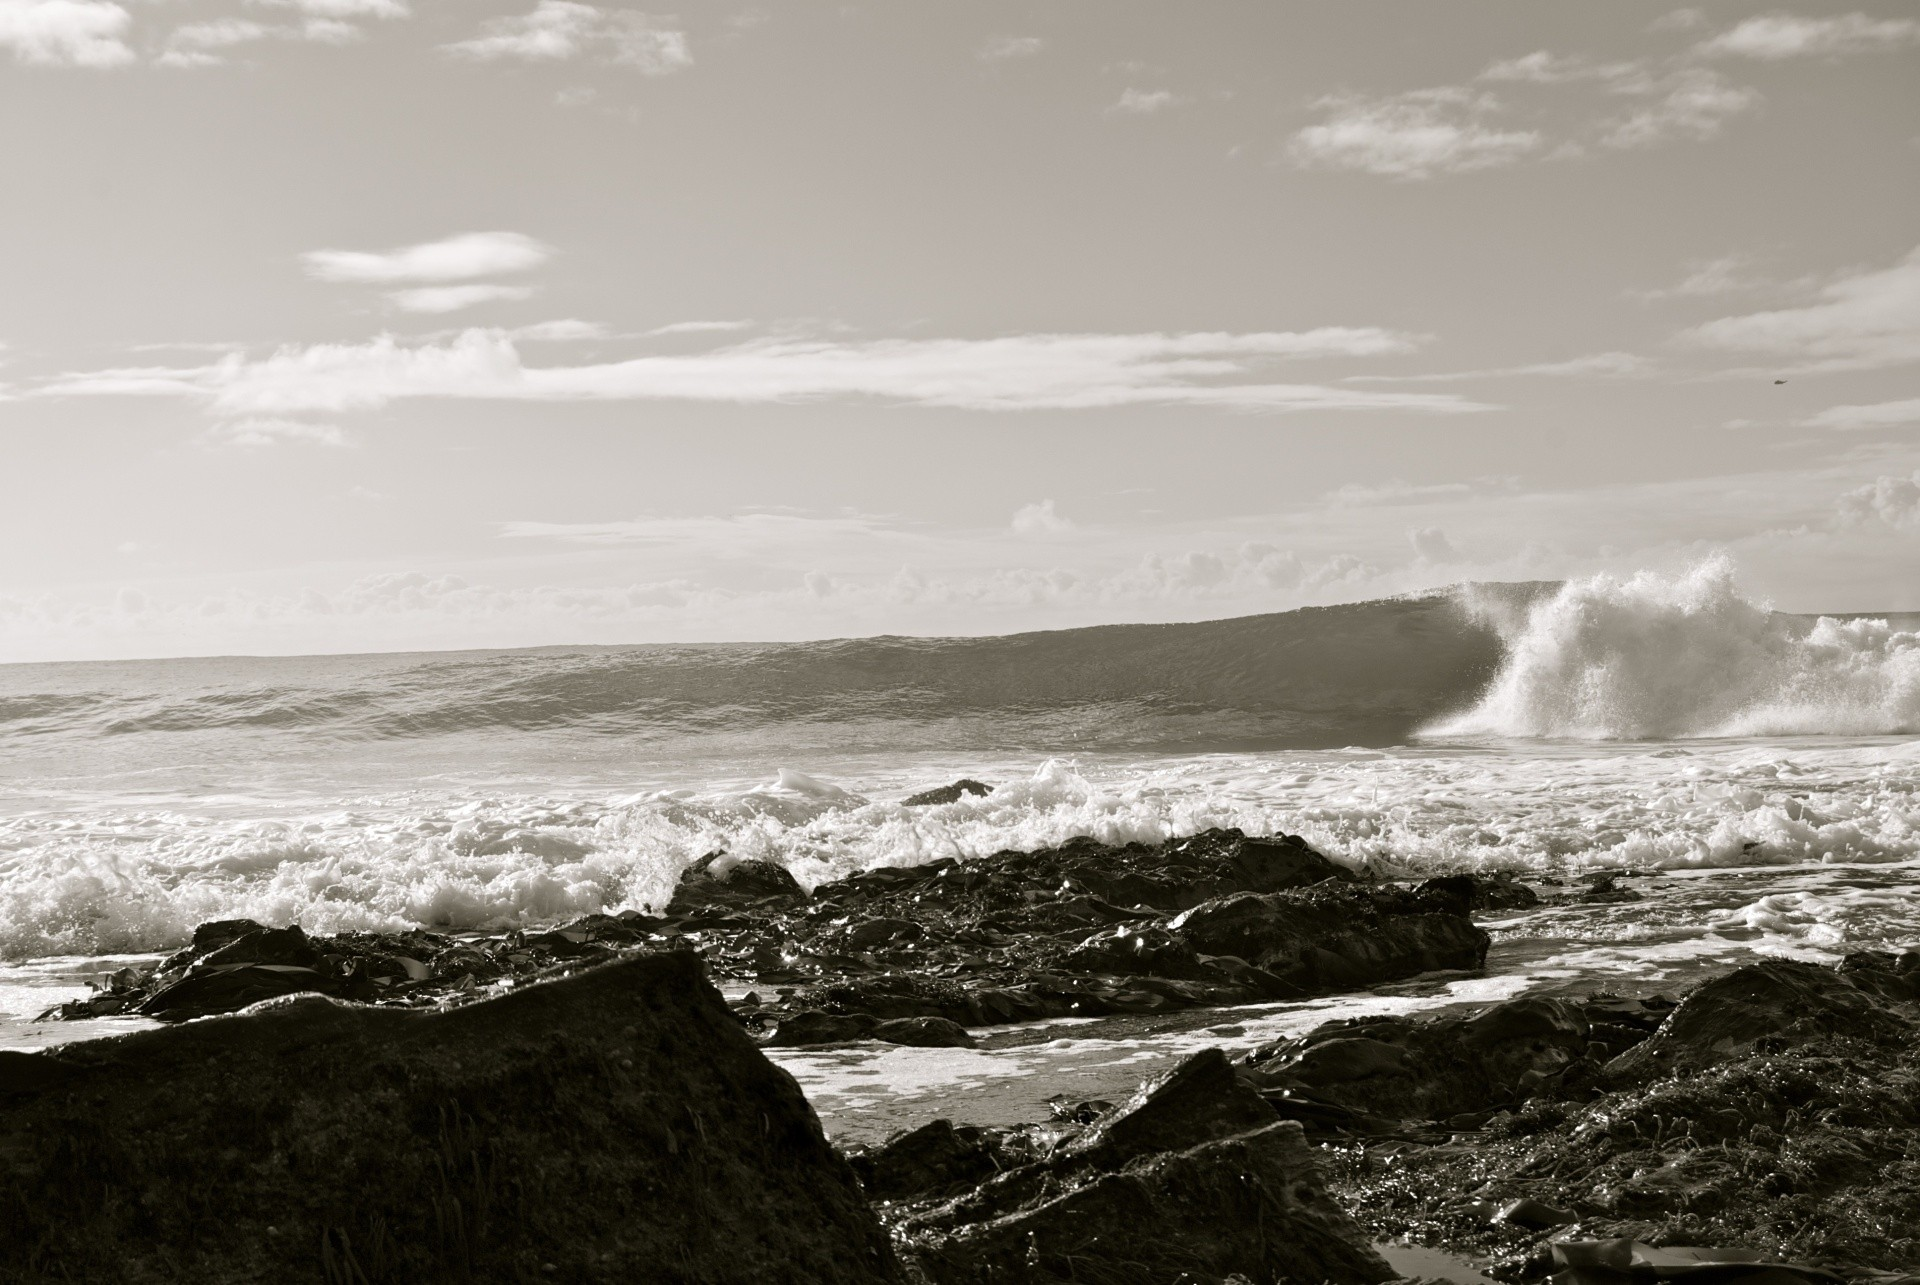 R.L.S 's photo of Porthleven